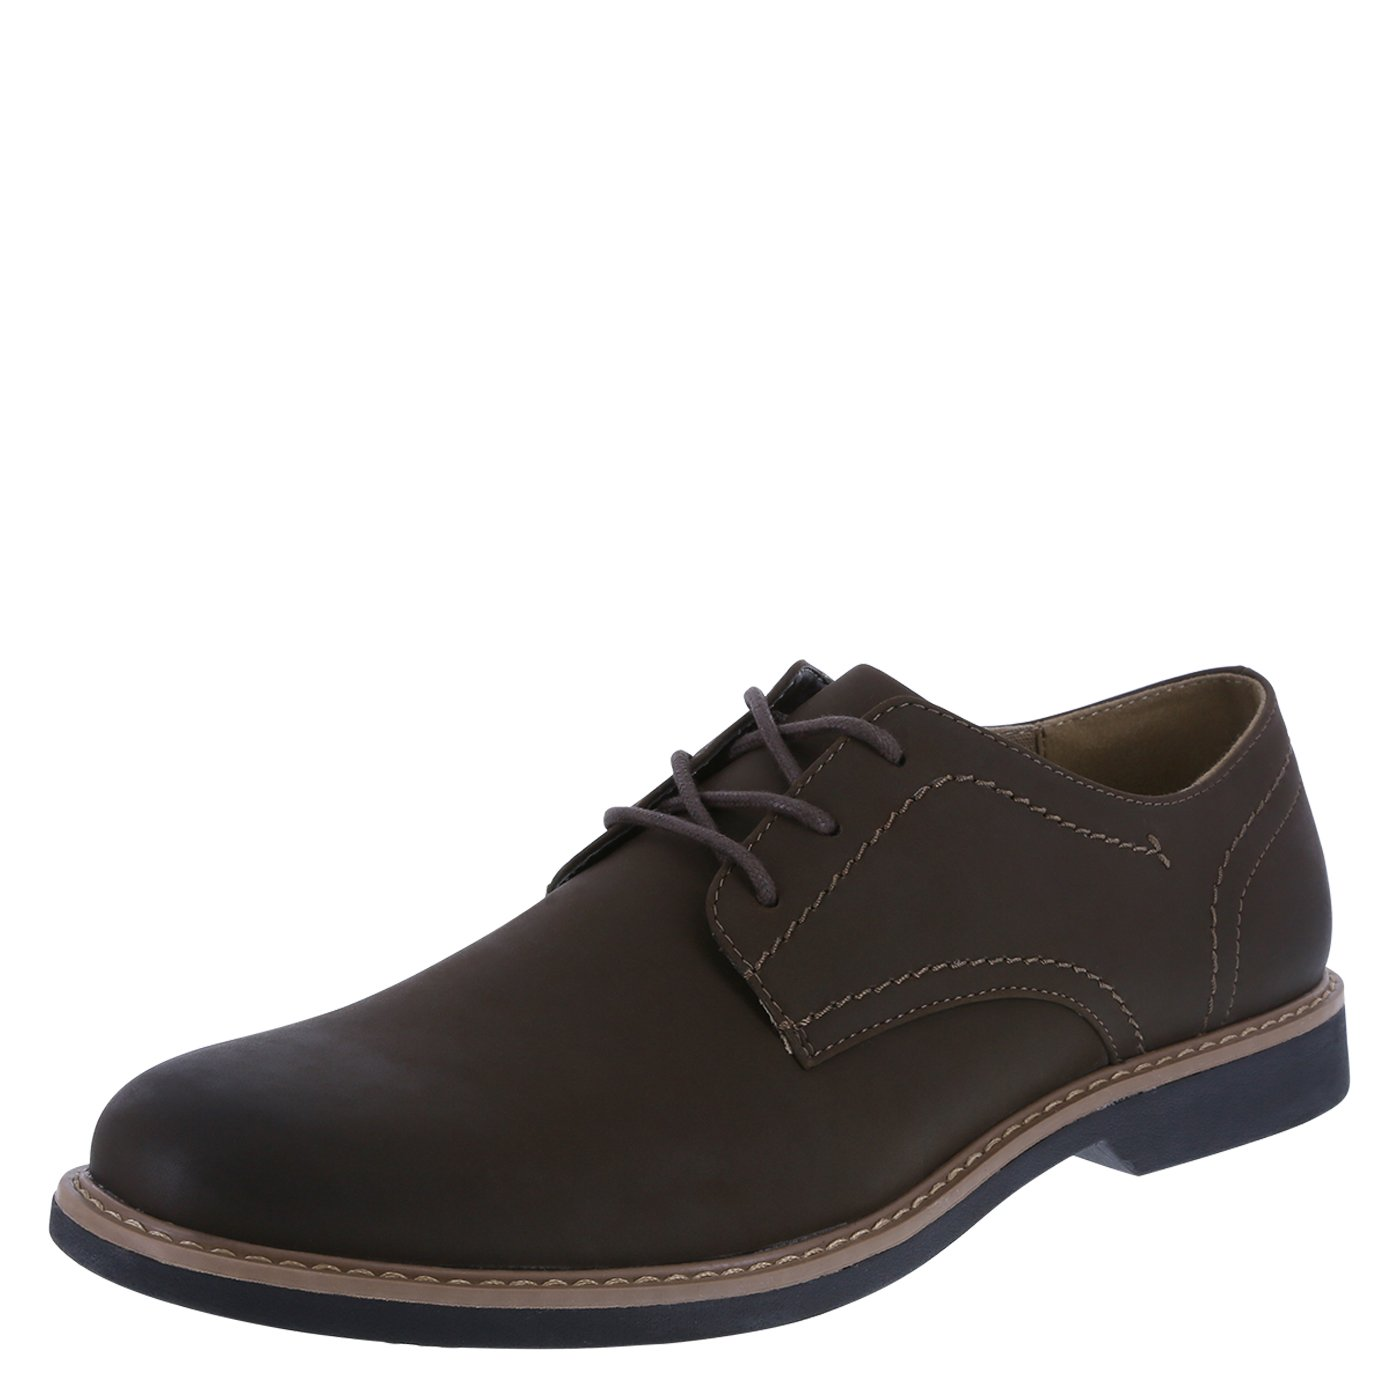 Dexter Men's Brown Men's Burt Plain-Toe Oxford 9.5 Regular by Dexter